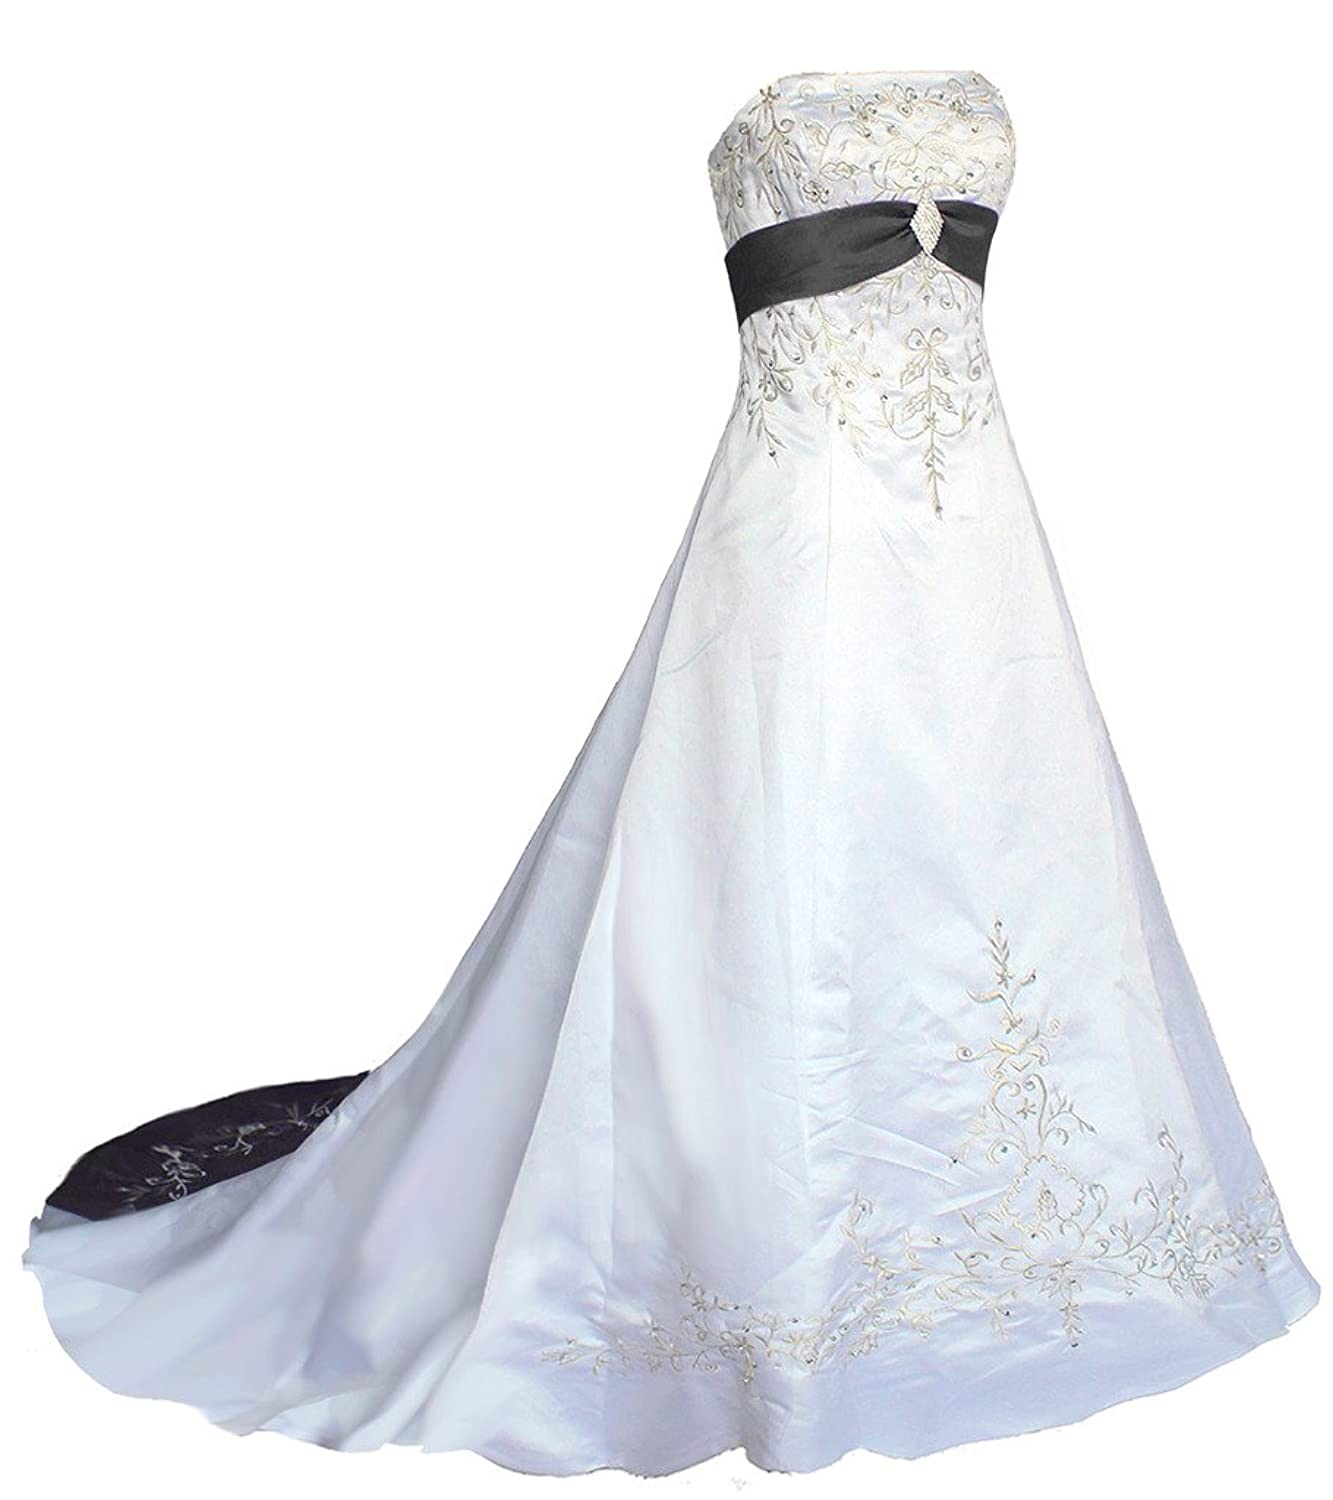 Oailiya Women's Embroidery Satin Wedding Dress Bride Gown